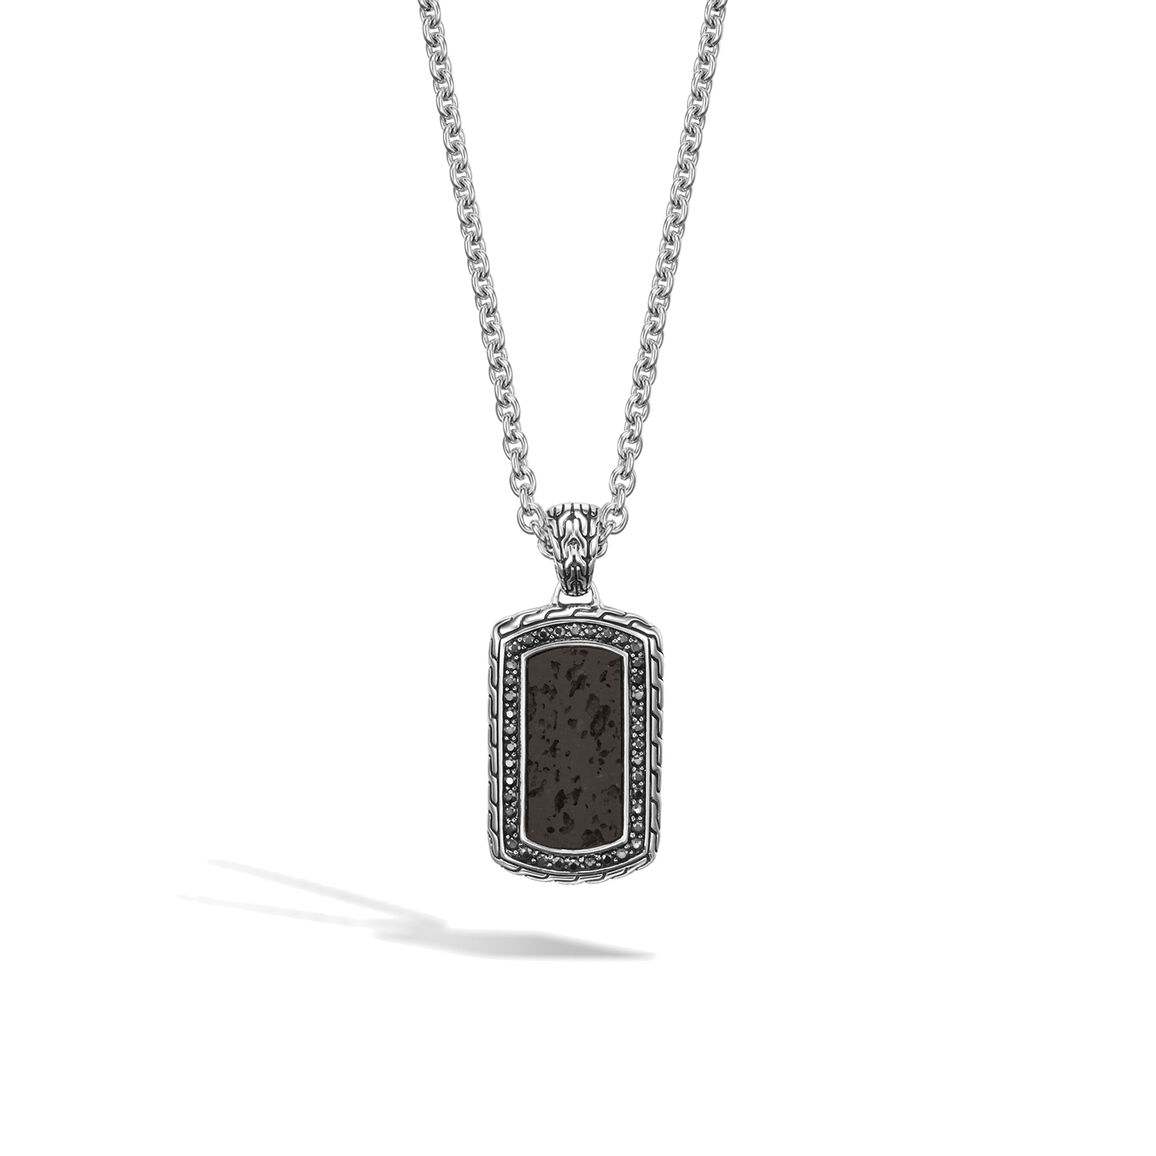 Classic Chain Dog Tag Necklace in Silver, Volcanic, Gemstone